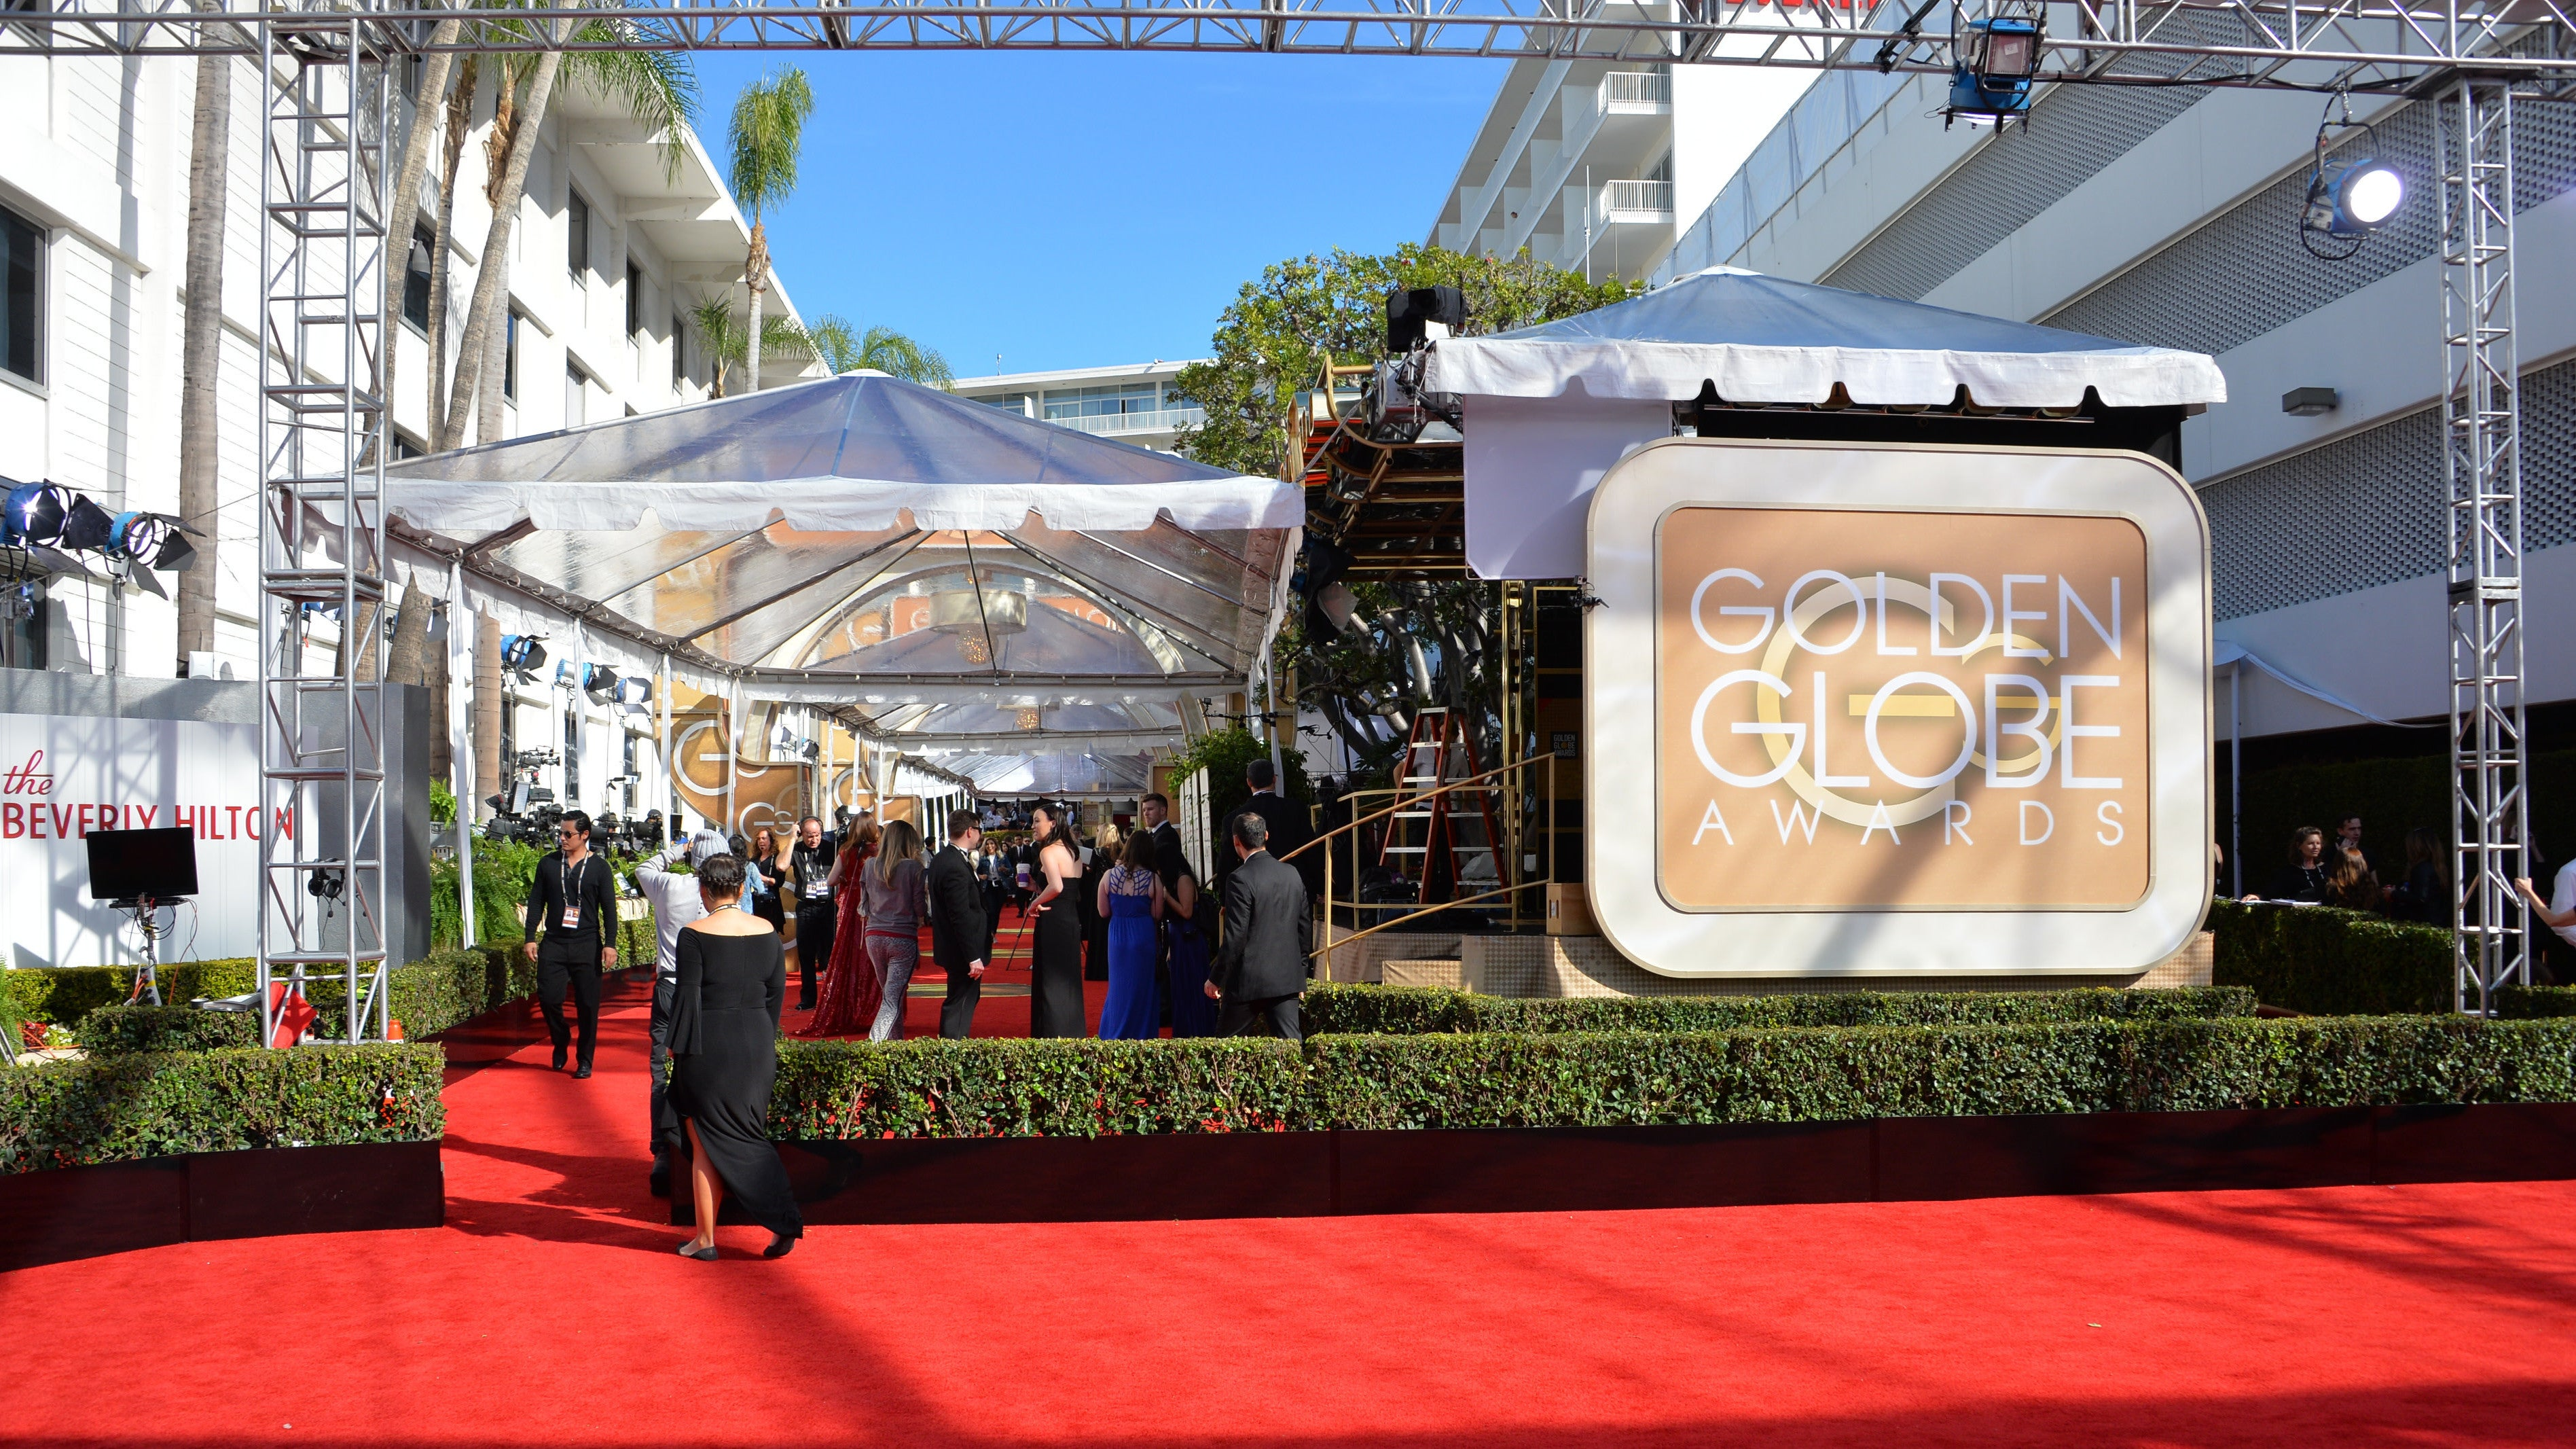 How To Watch The Golden Globes Without Cable